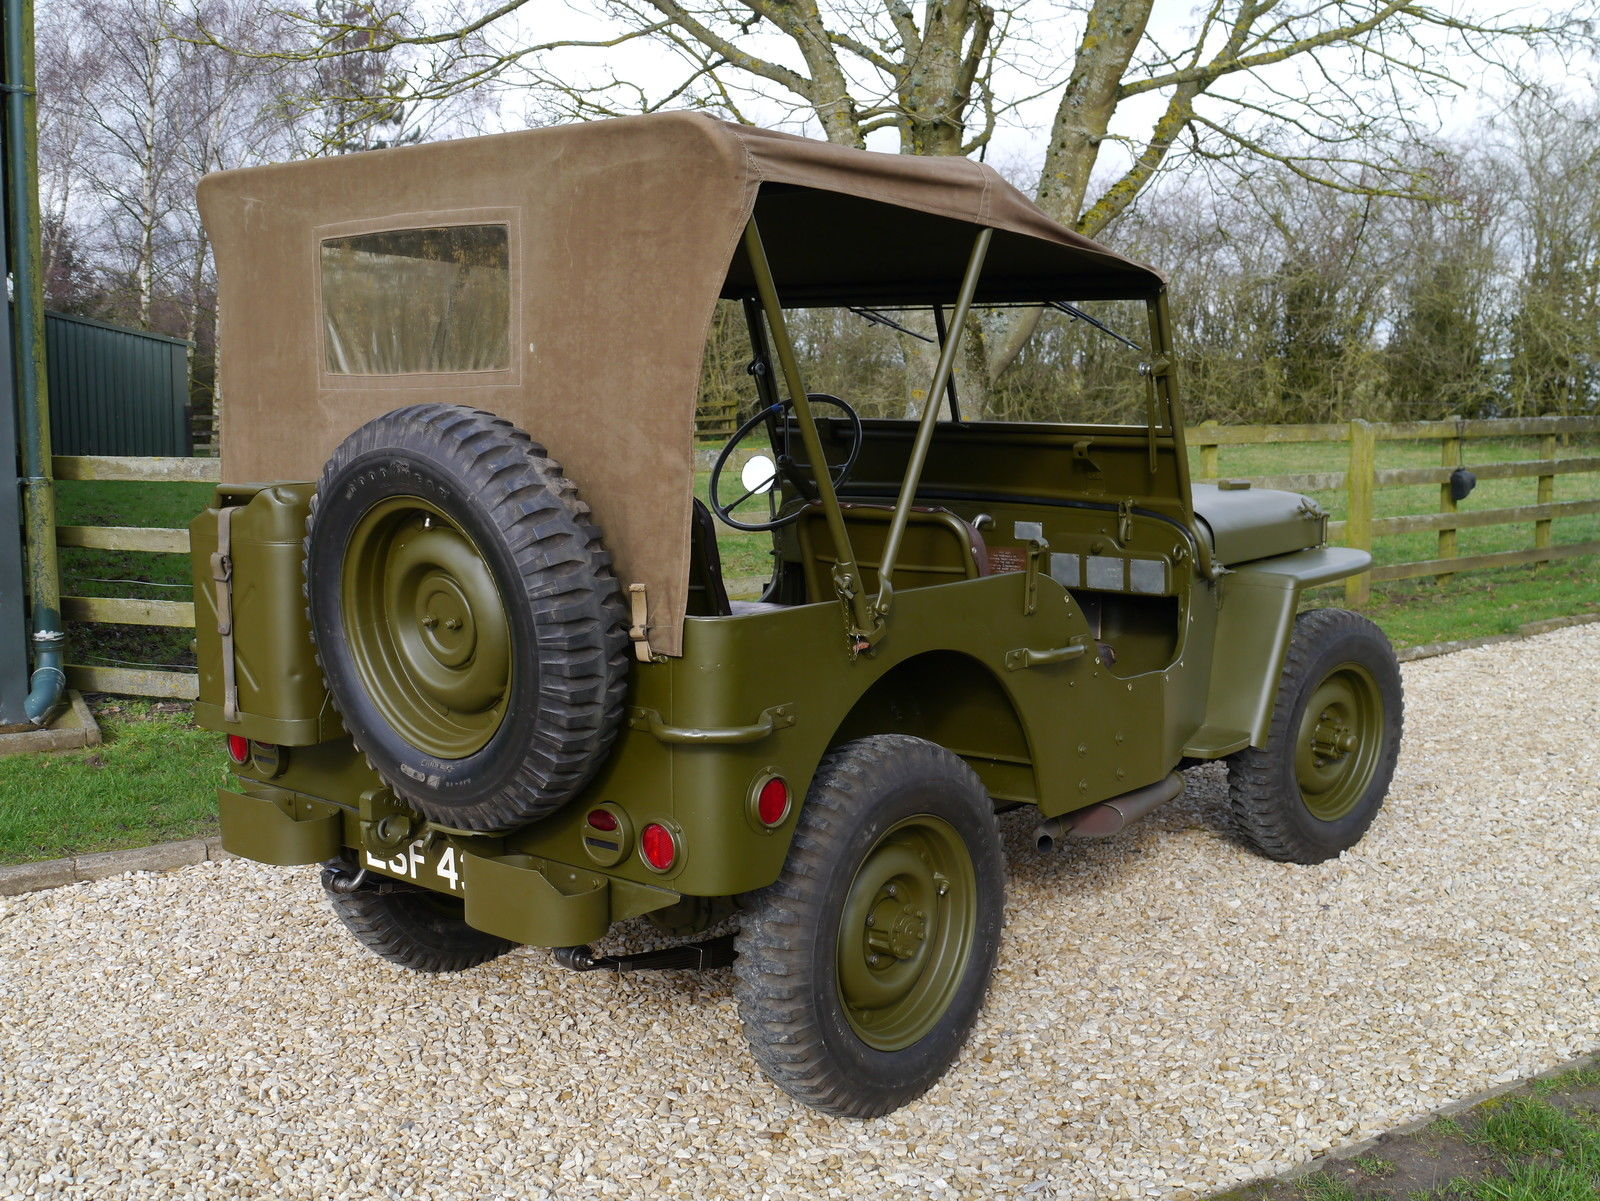 Build Your Own Jeep >> You Can Buy Dwight Eisenhower's Willys Jeep for $750k on eBay - autoevolution